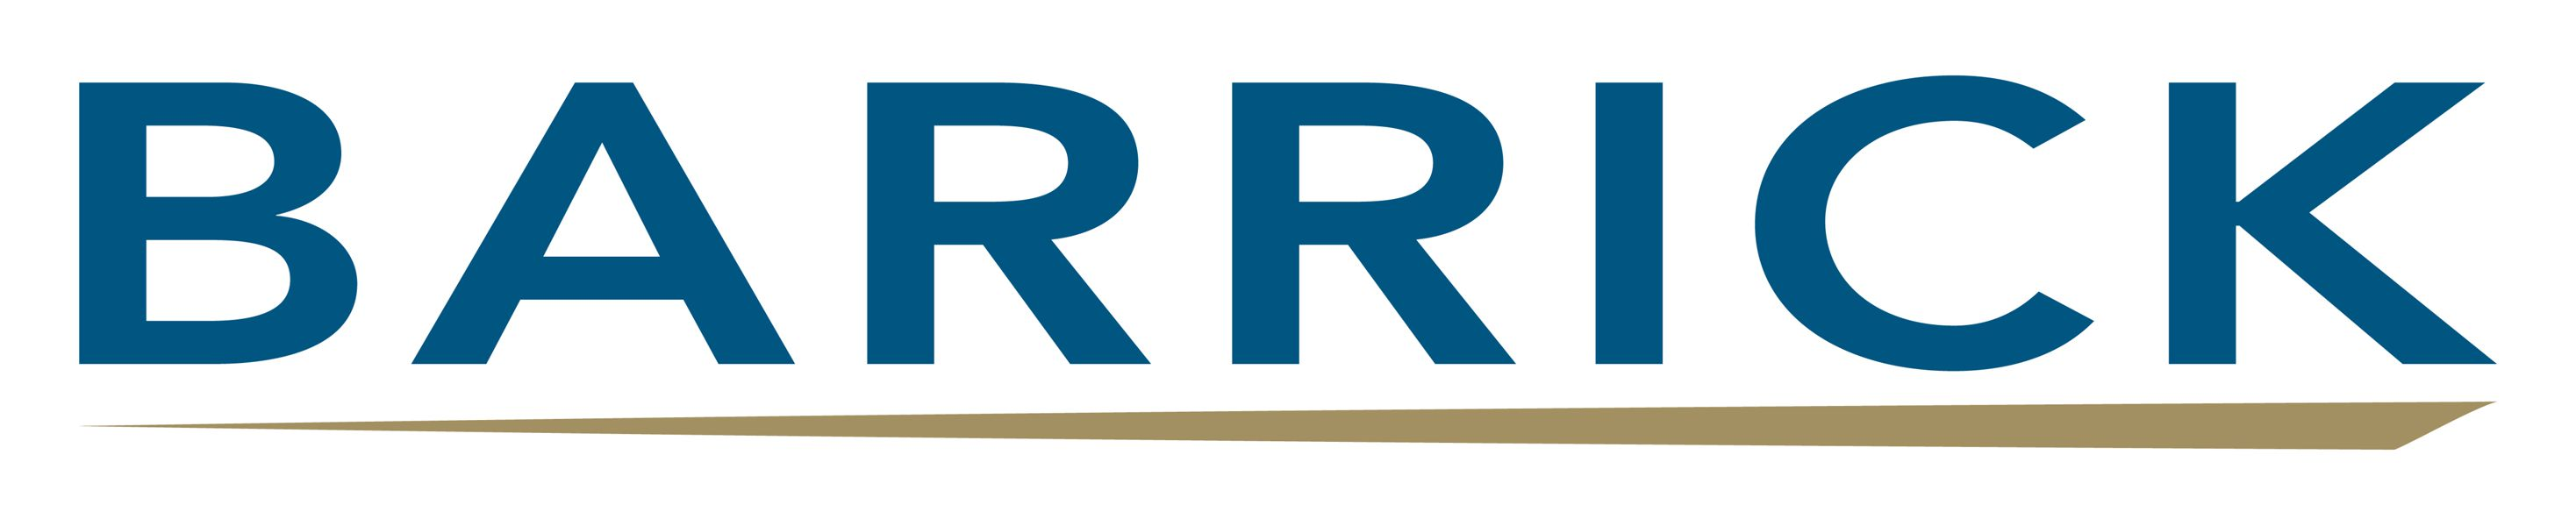 Barrick Sustainability Report Highlights Commitment to ESG